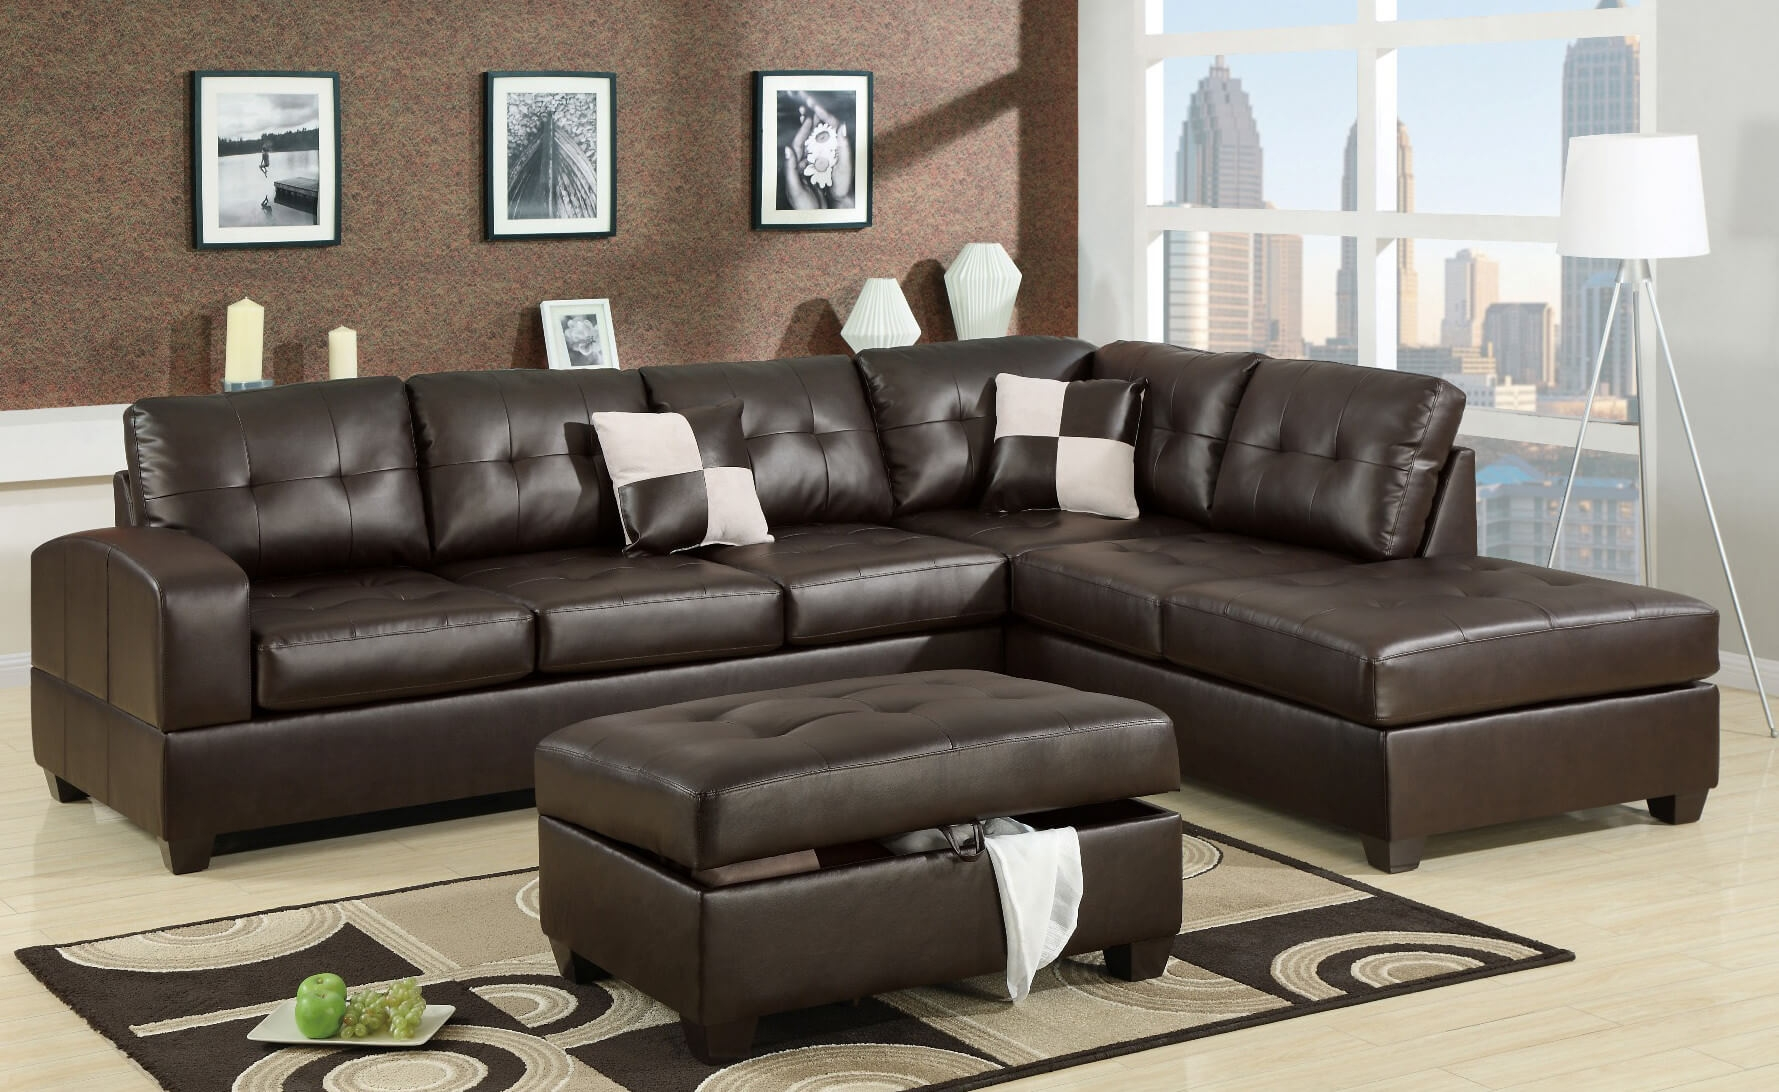 100 Beautiful Sectional Sofas Under 1000 Regarding Quality Sectional Sofa (#1 of 12)